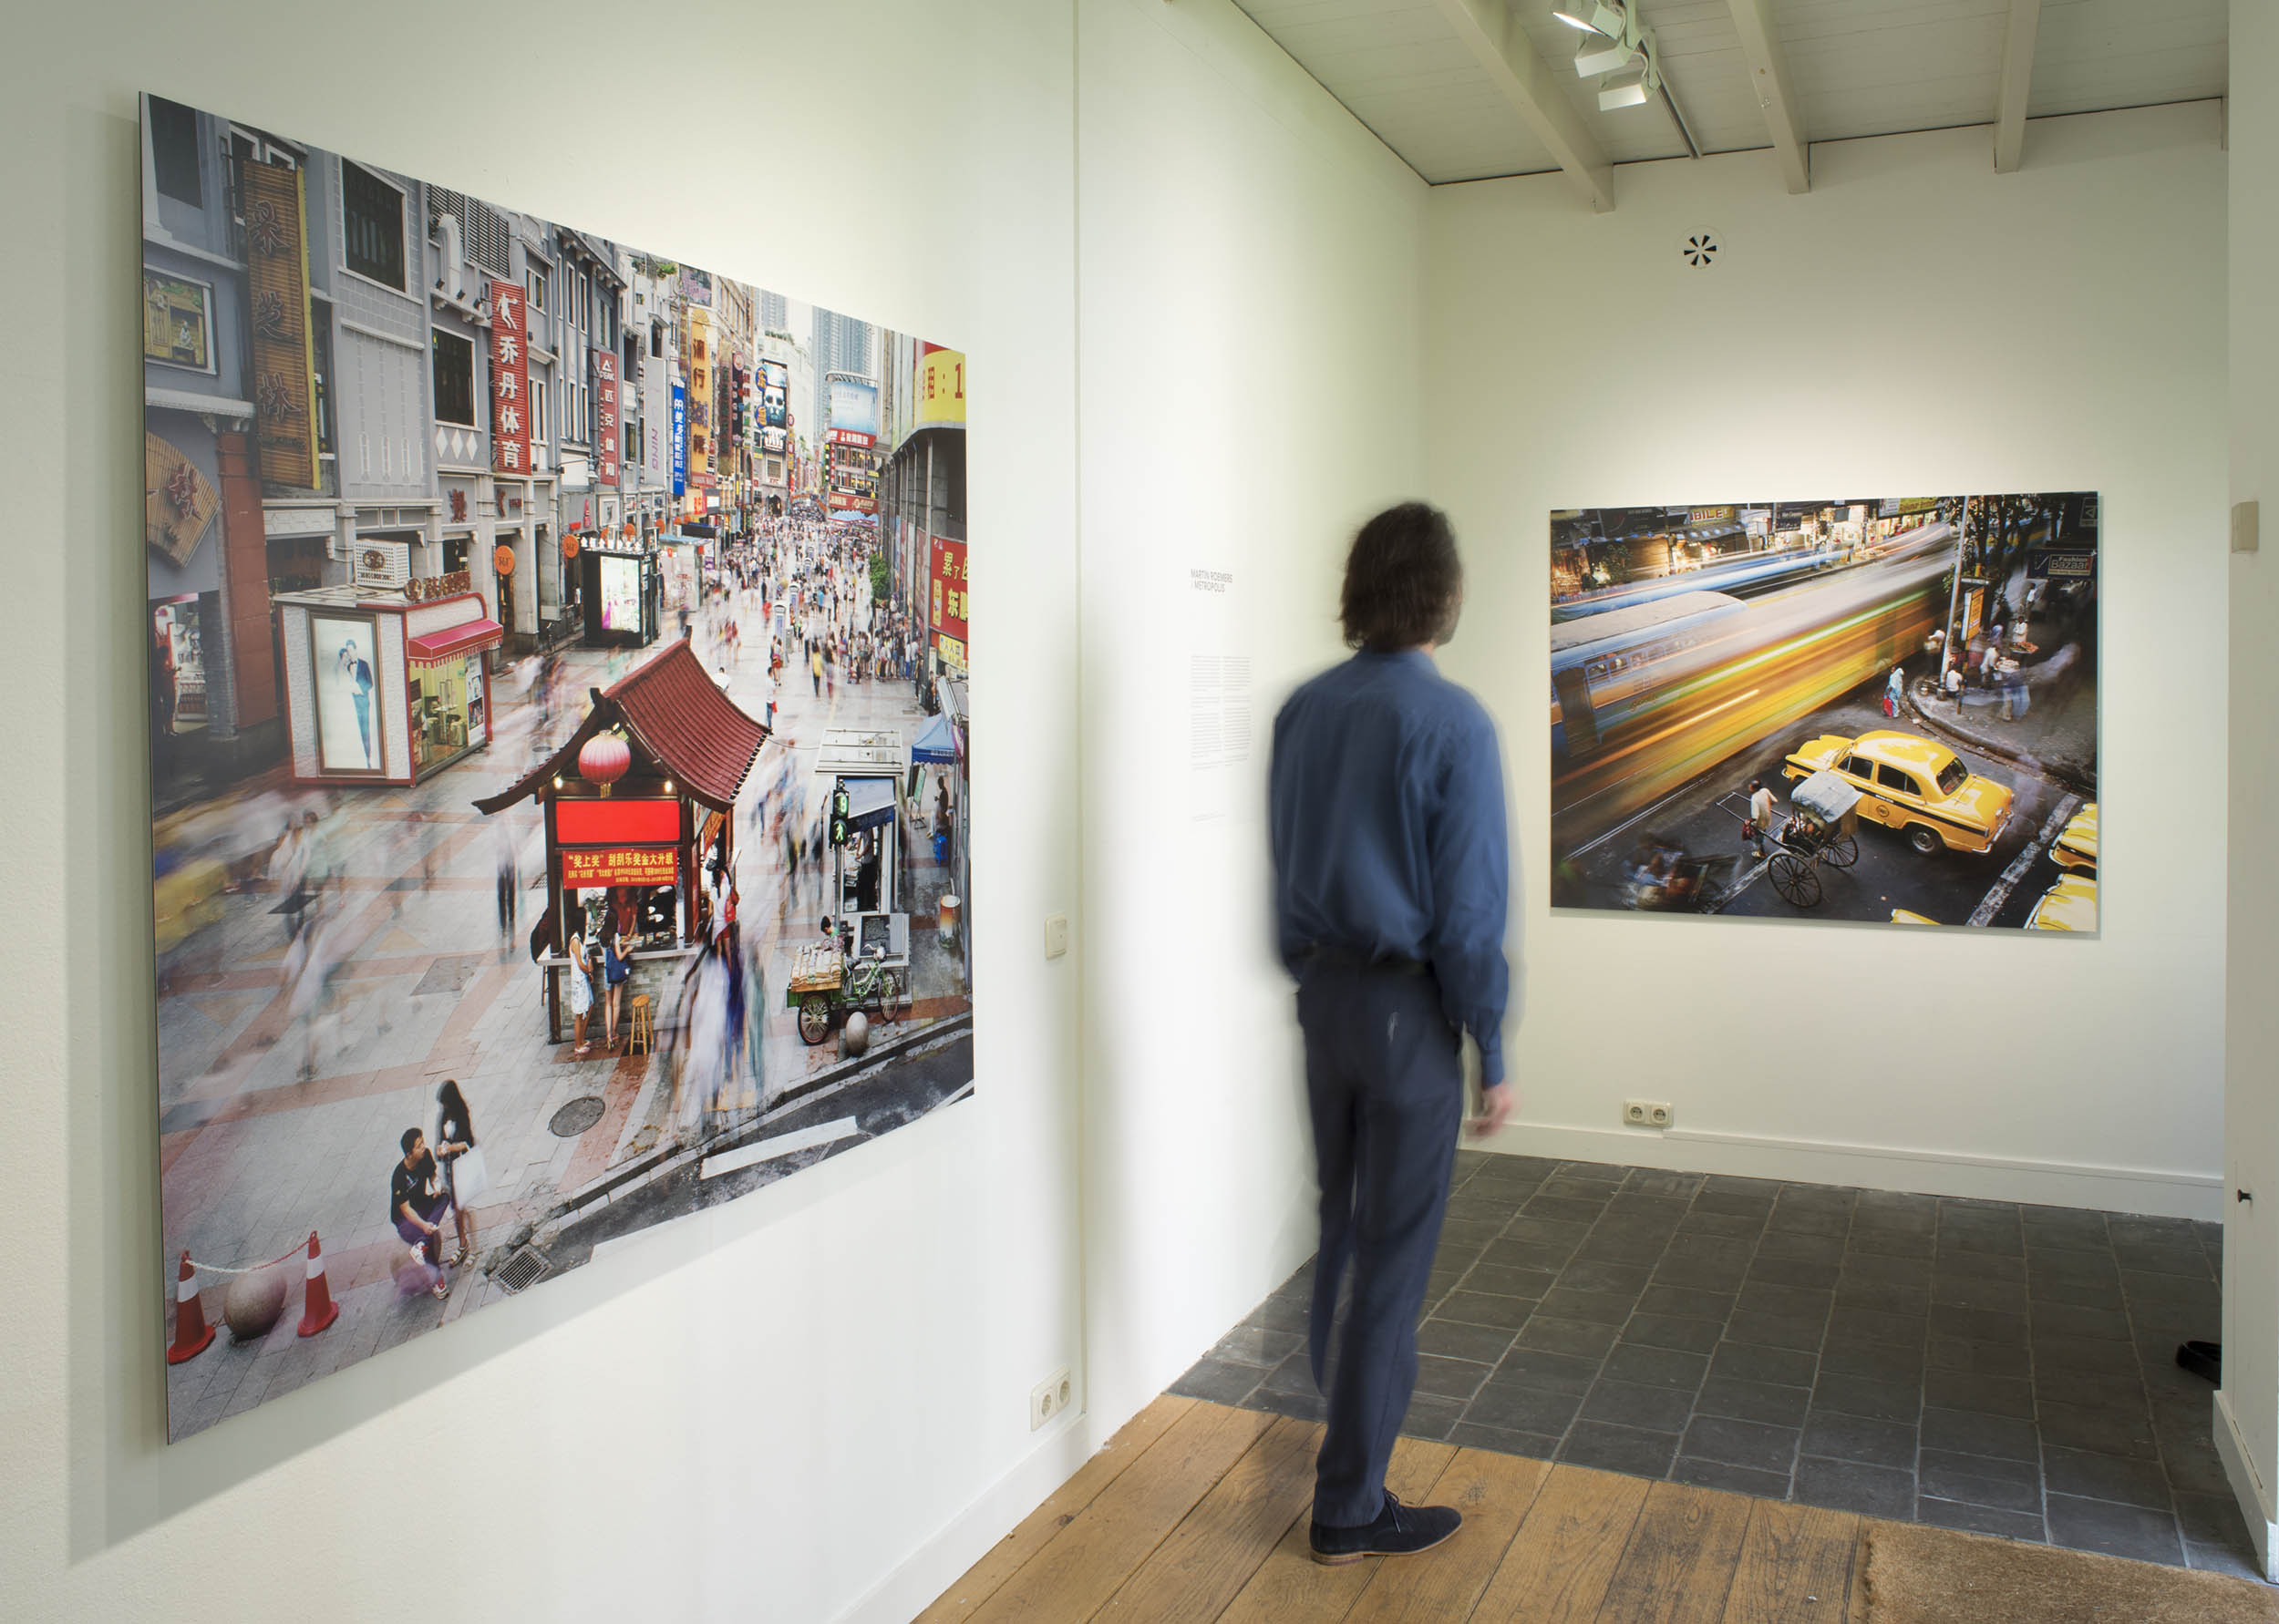 Huis Marseille – Museum for Photography, Amsterdam (Preview)